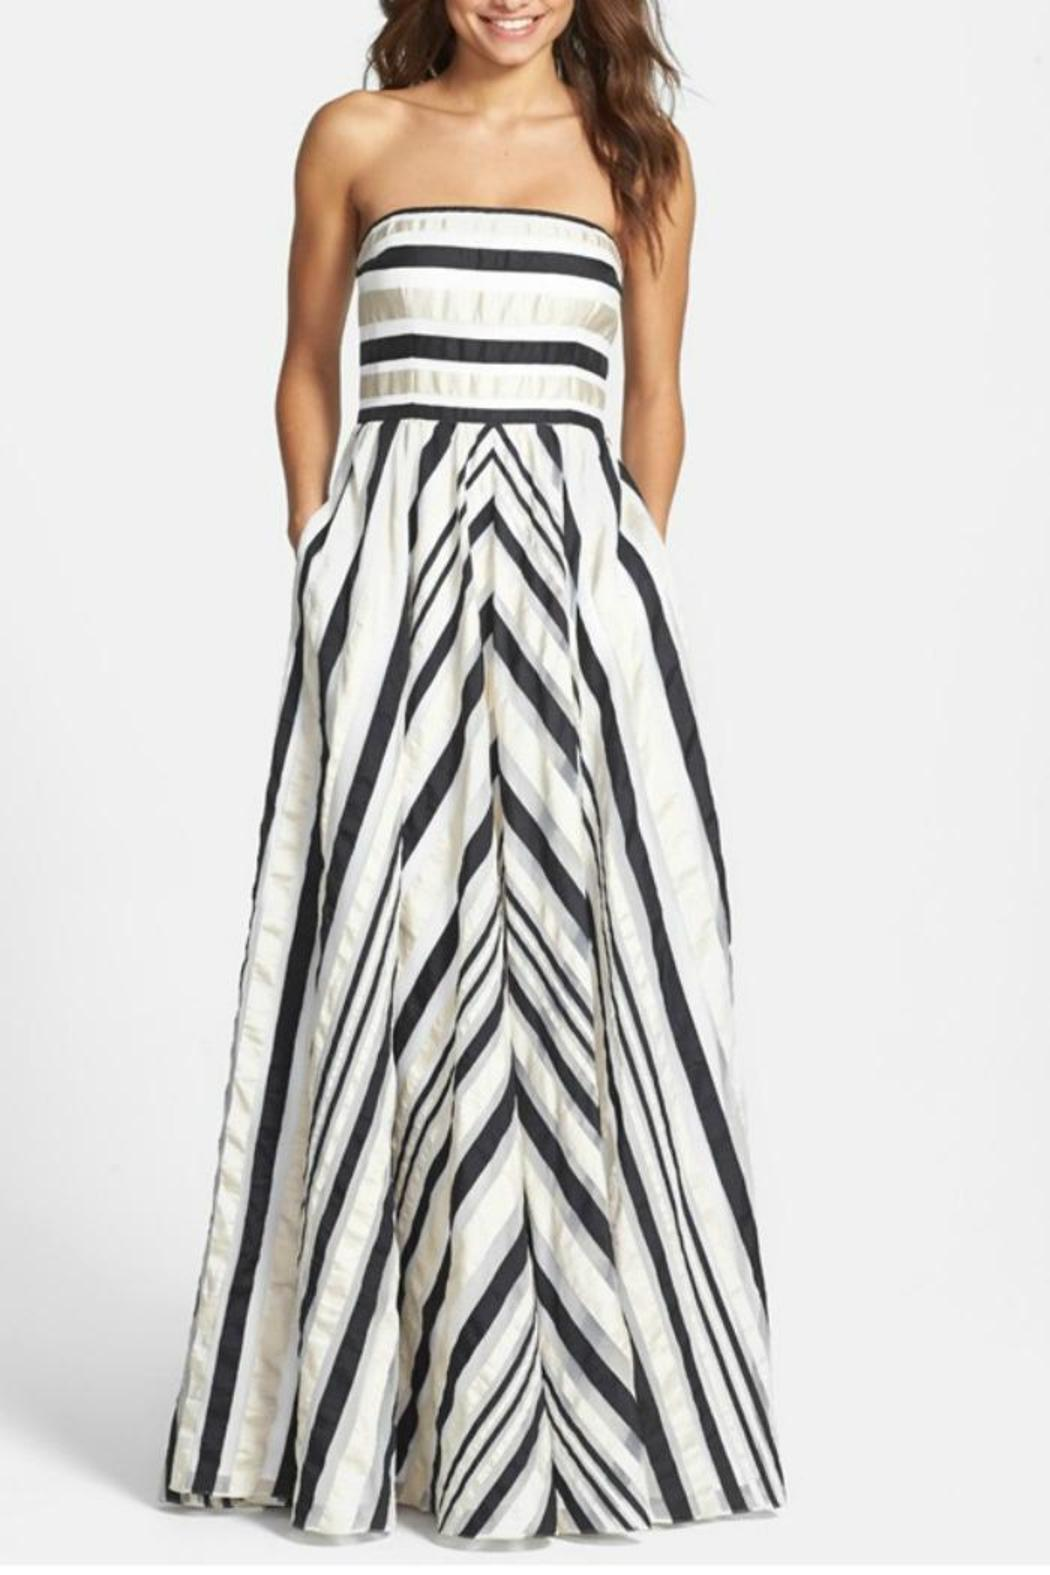 Adrianna Papell Ribbon Striped Dress - Front Full Image